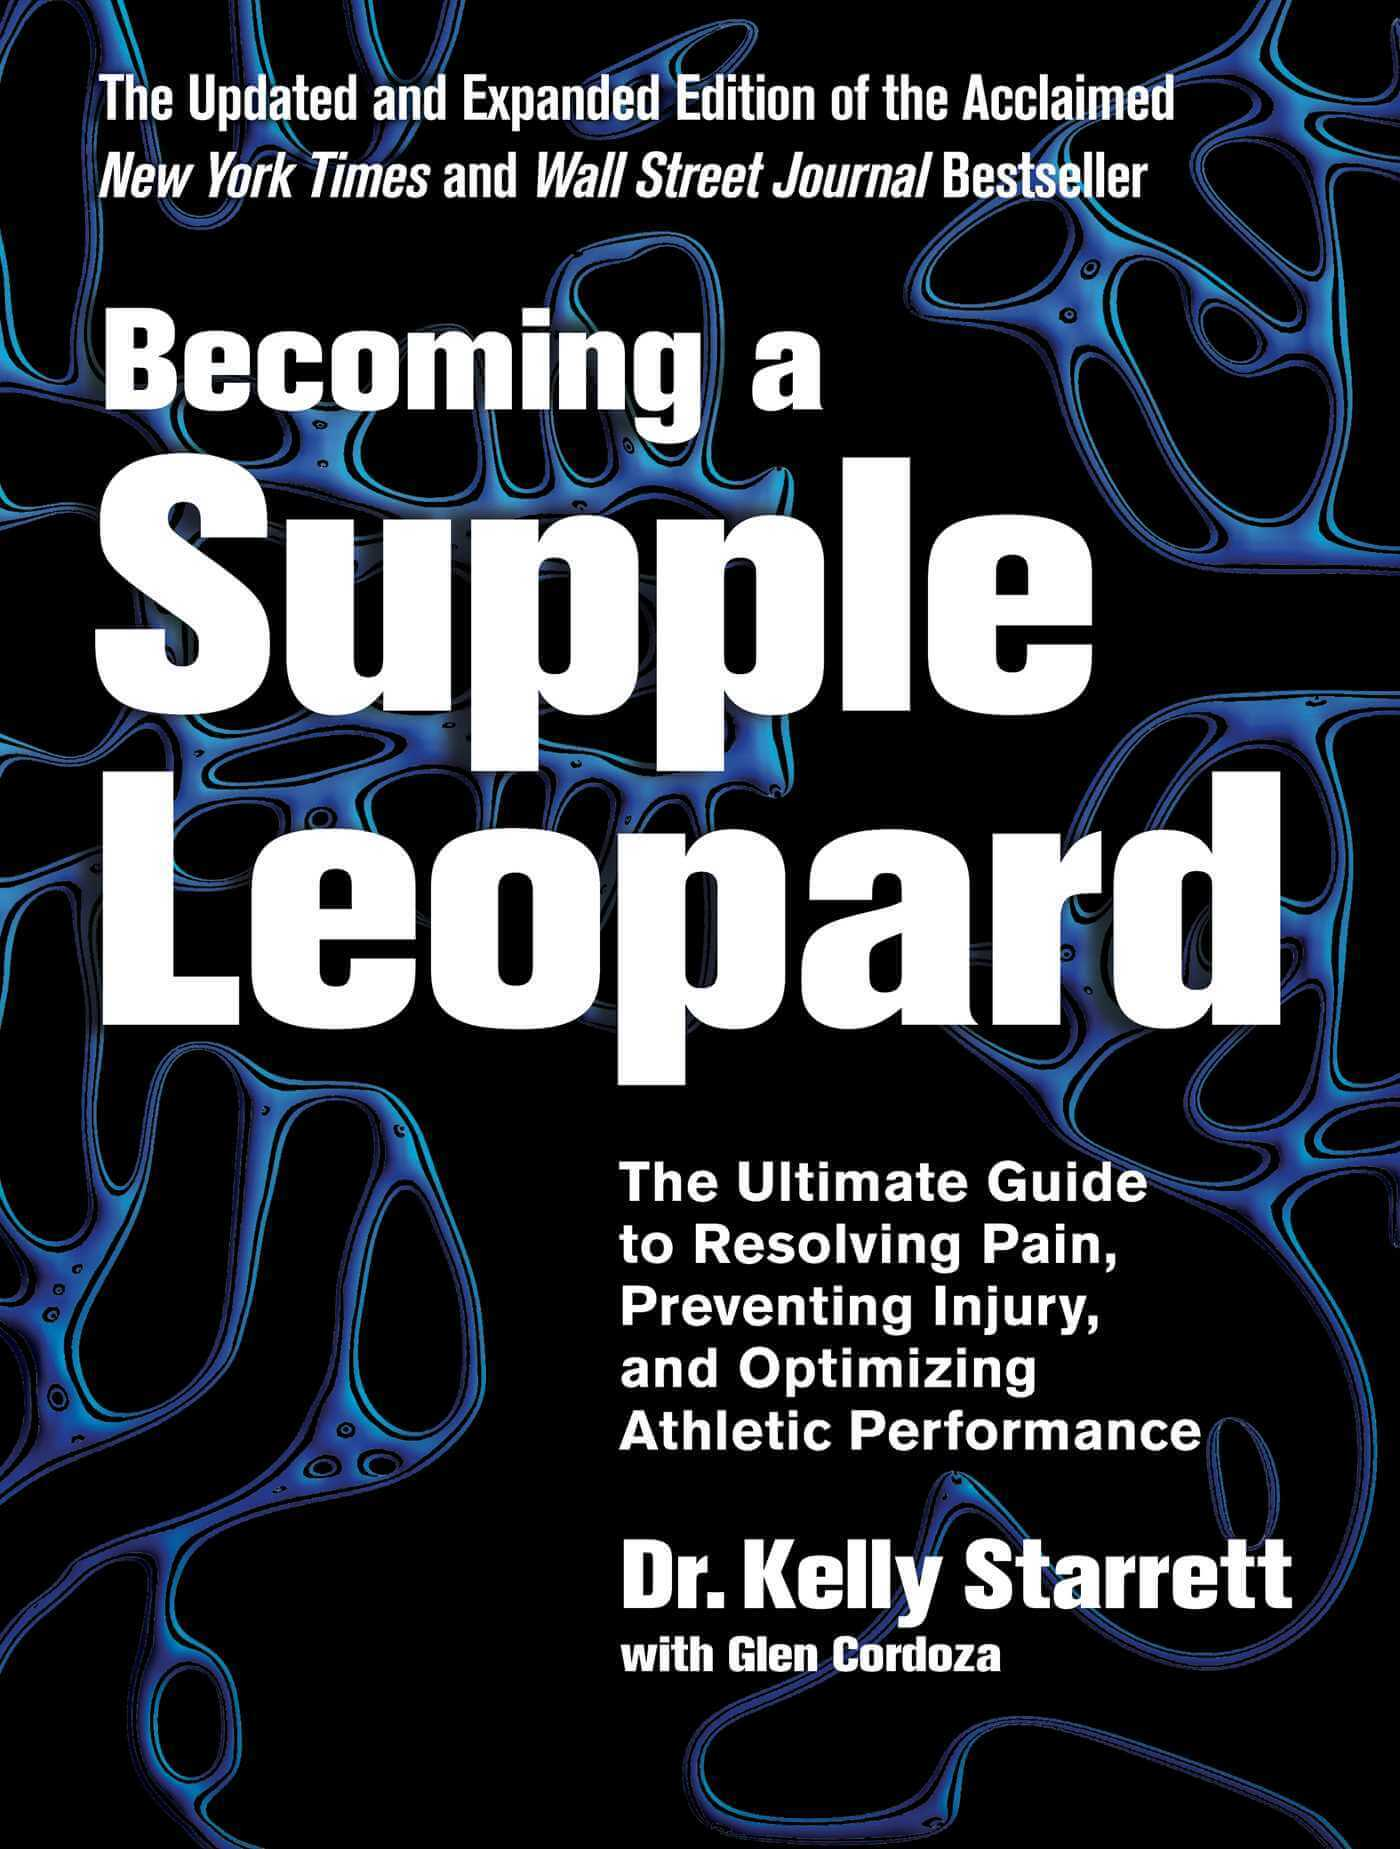 Becoming a Supple Leopard - Dr. Kelly Starrett, July 2021